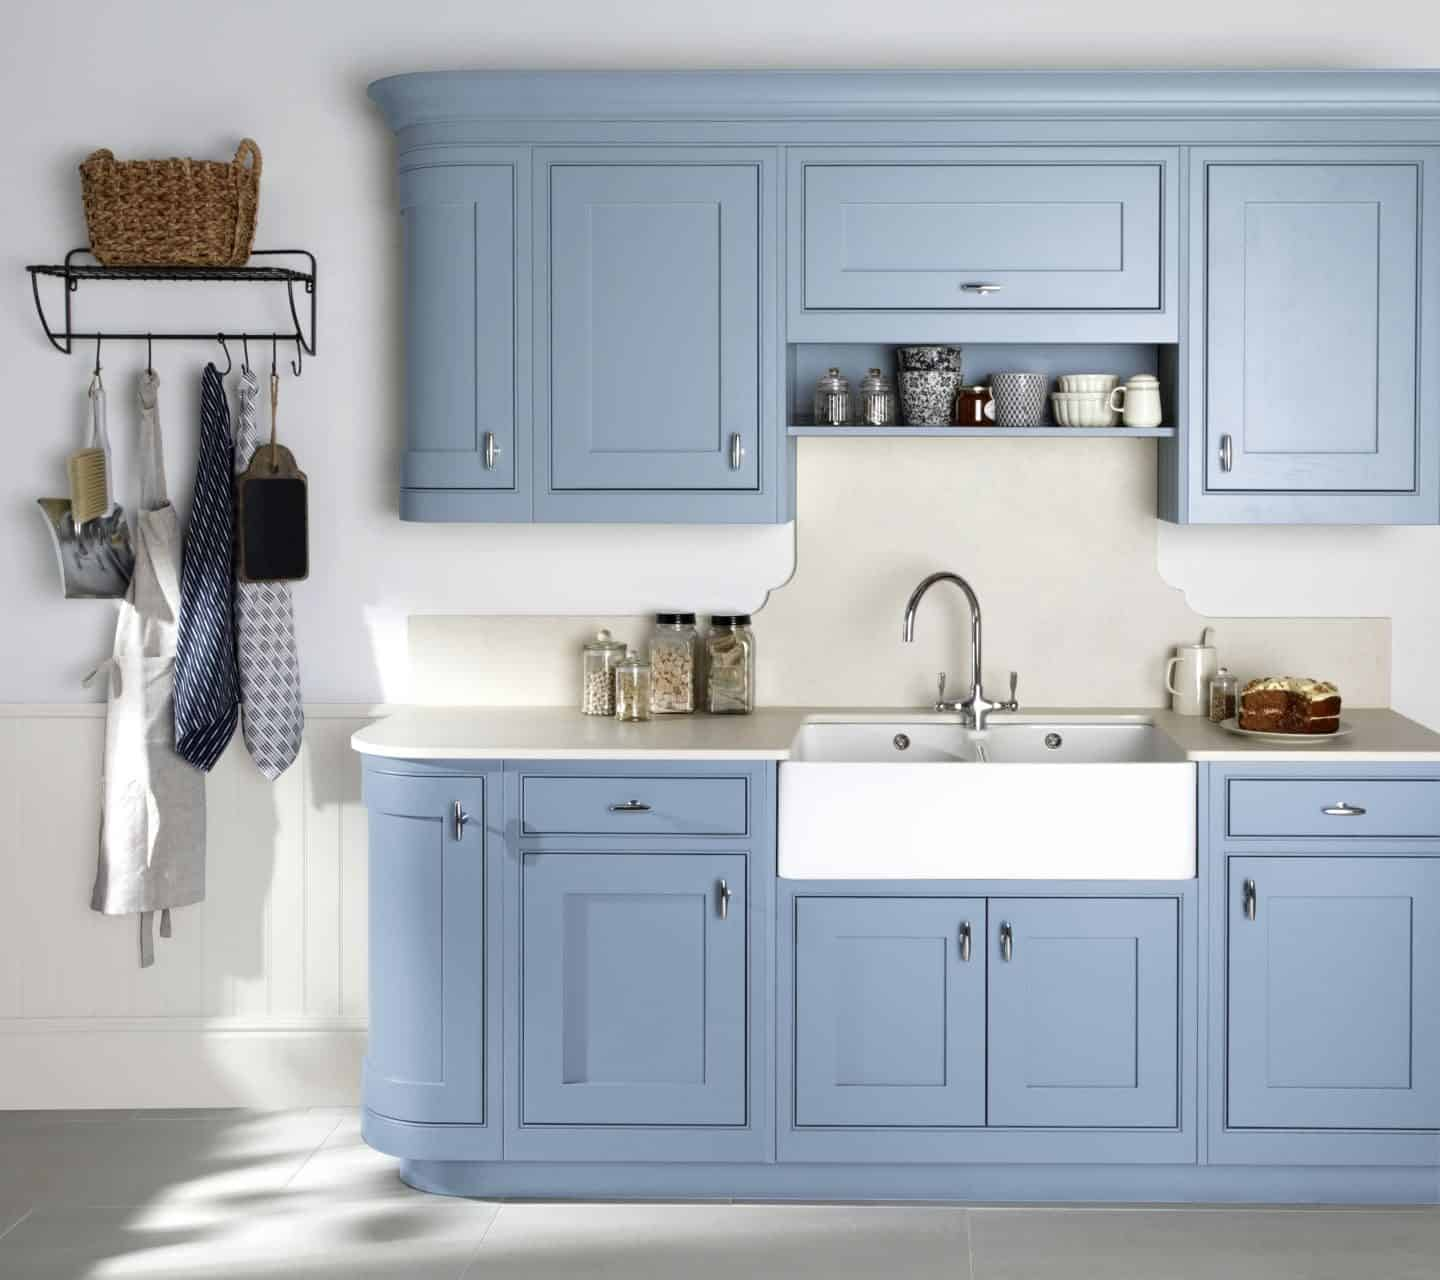 Burbidge, Langton kitchen in Bespoke Painted Pantone Placid Blue, from £14,500